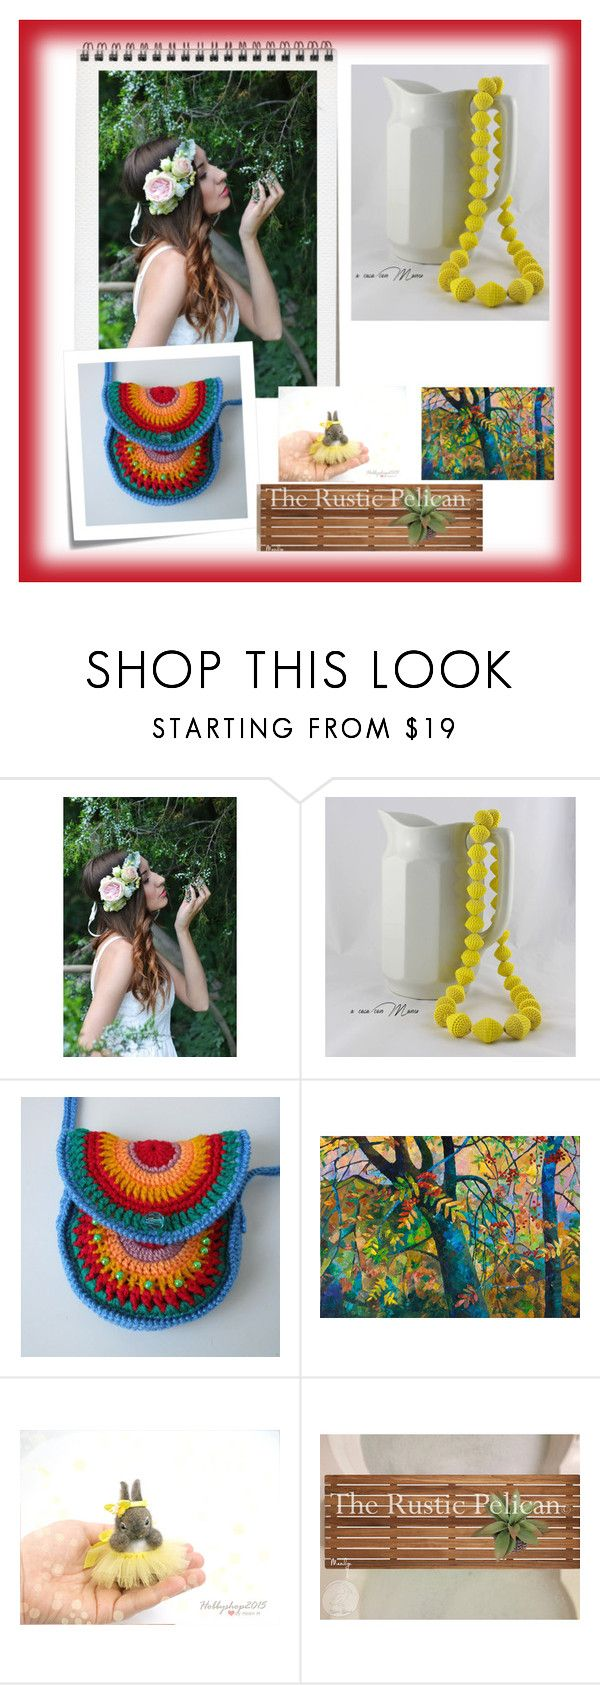 """""""Giornate di primavera"""" by acasaconmanu ❤ liked on Polyvore featuring Giallo, Dollhouse and Post-It"""